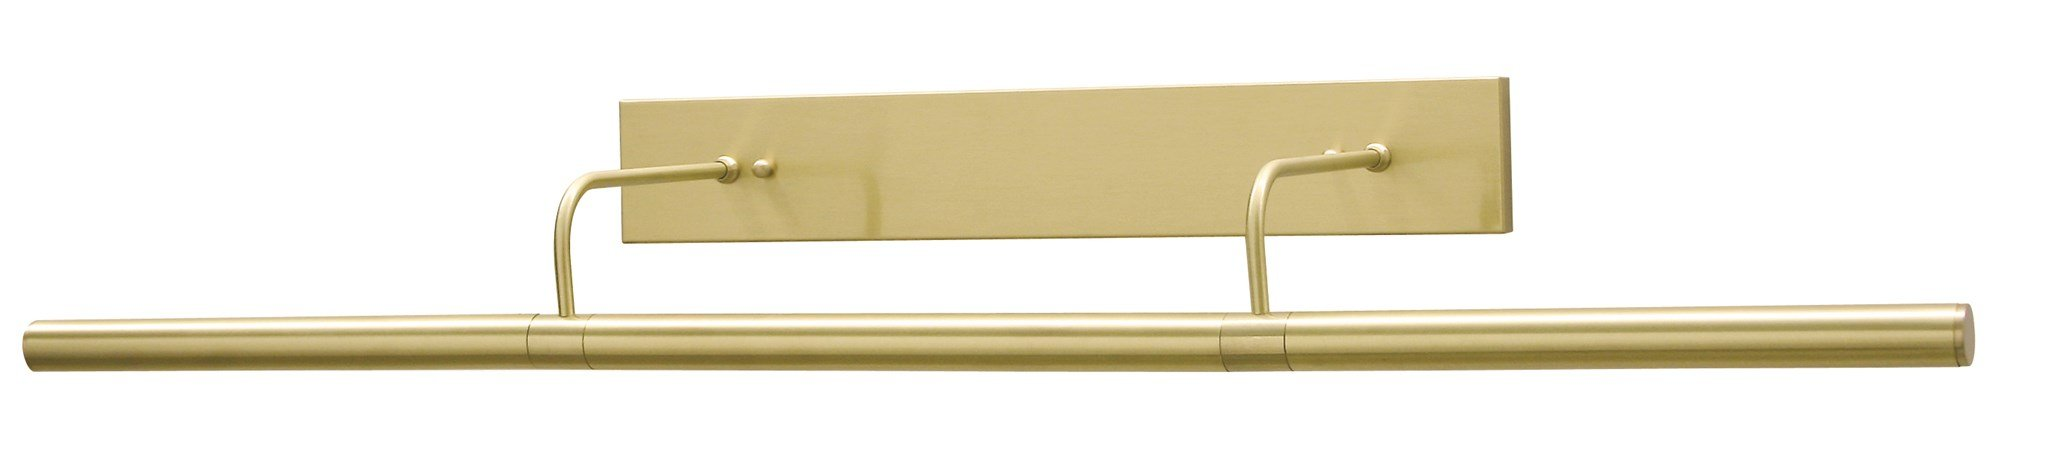 House of Troy DSL36-51 Direct Wire Slim-Line Picture Light, 36'', Satin Brass